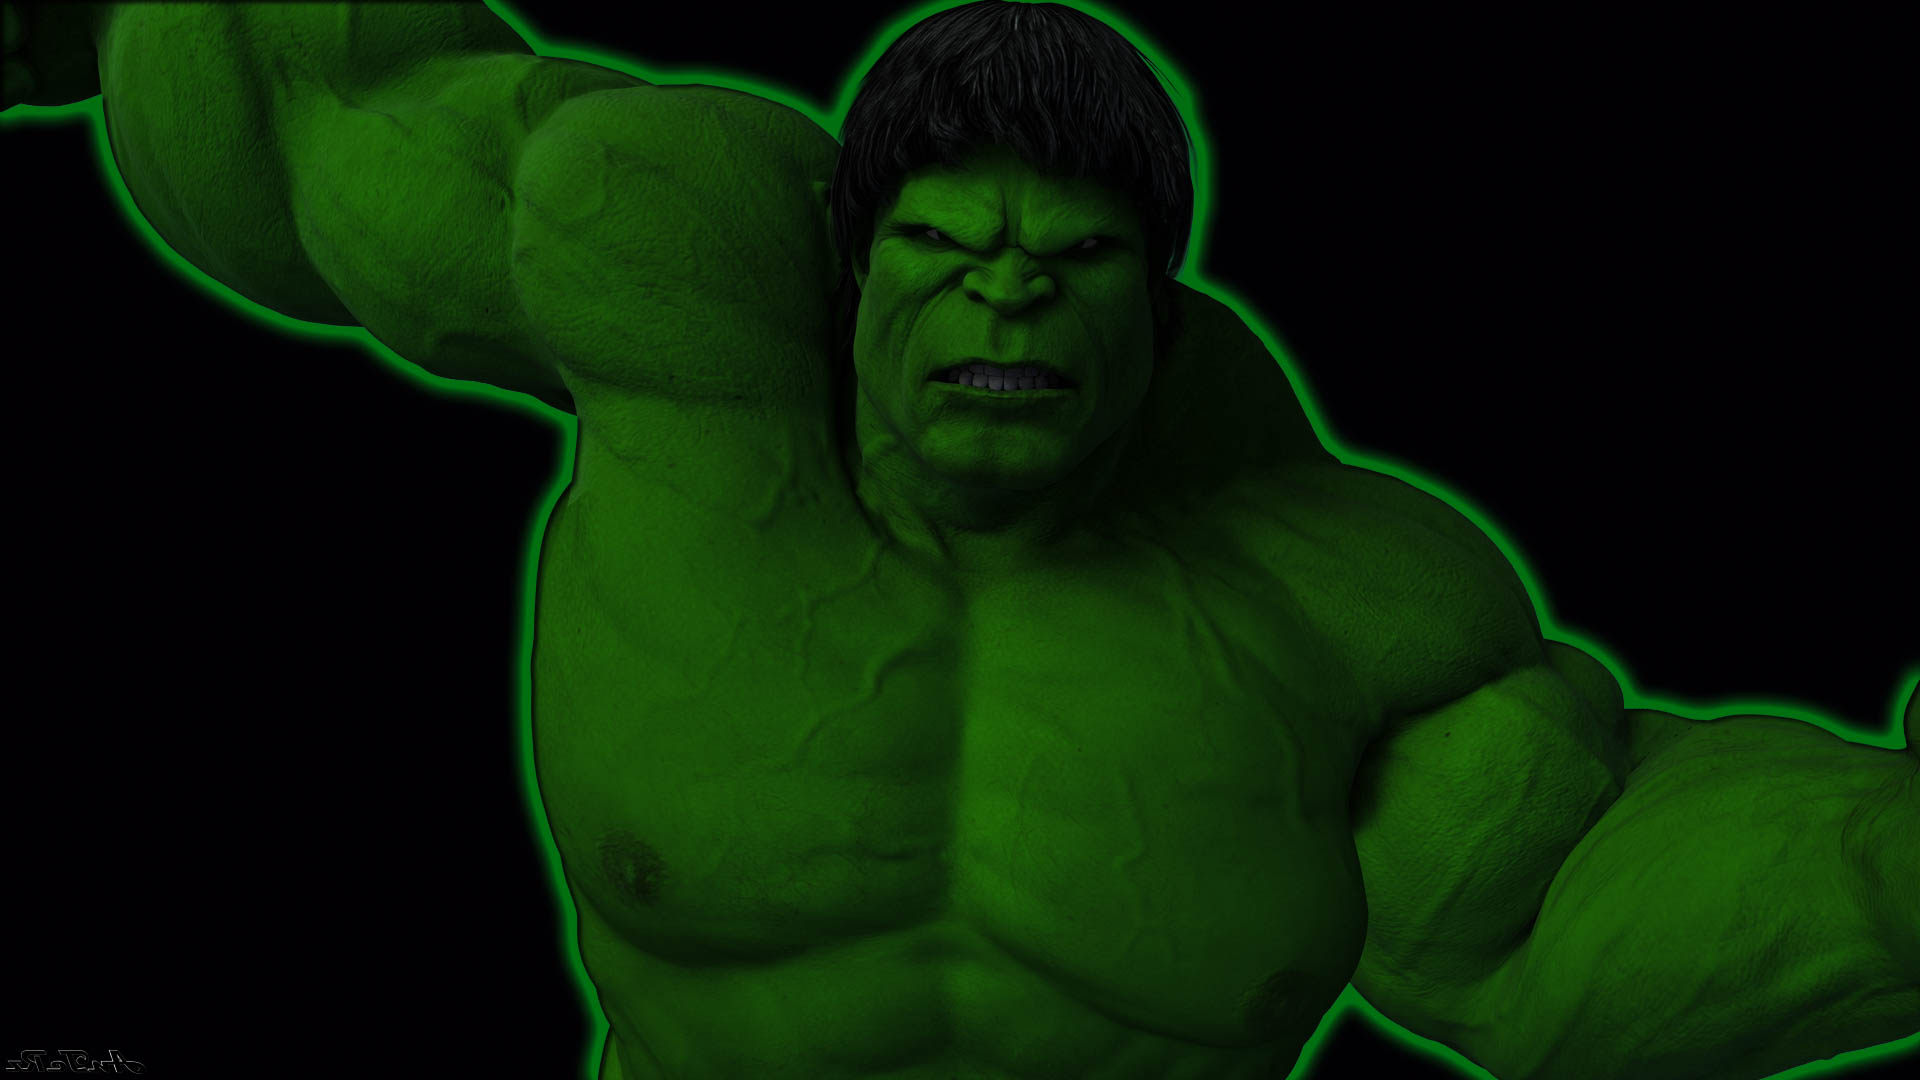 hulk new hd wallpapers amp desktop backgrounds all hd